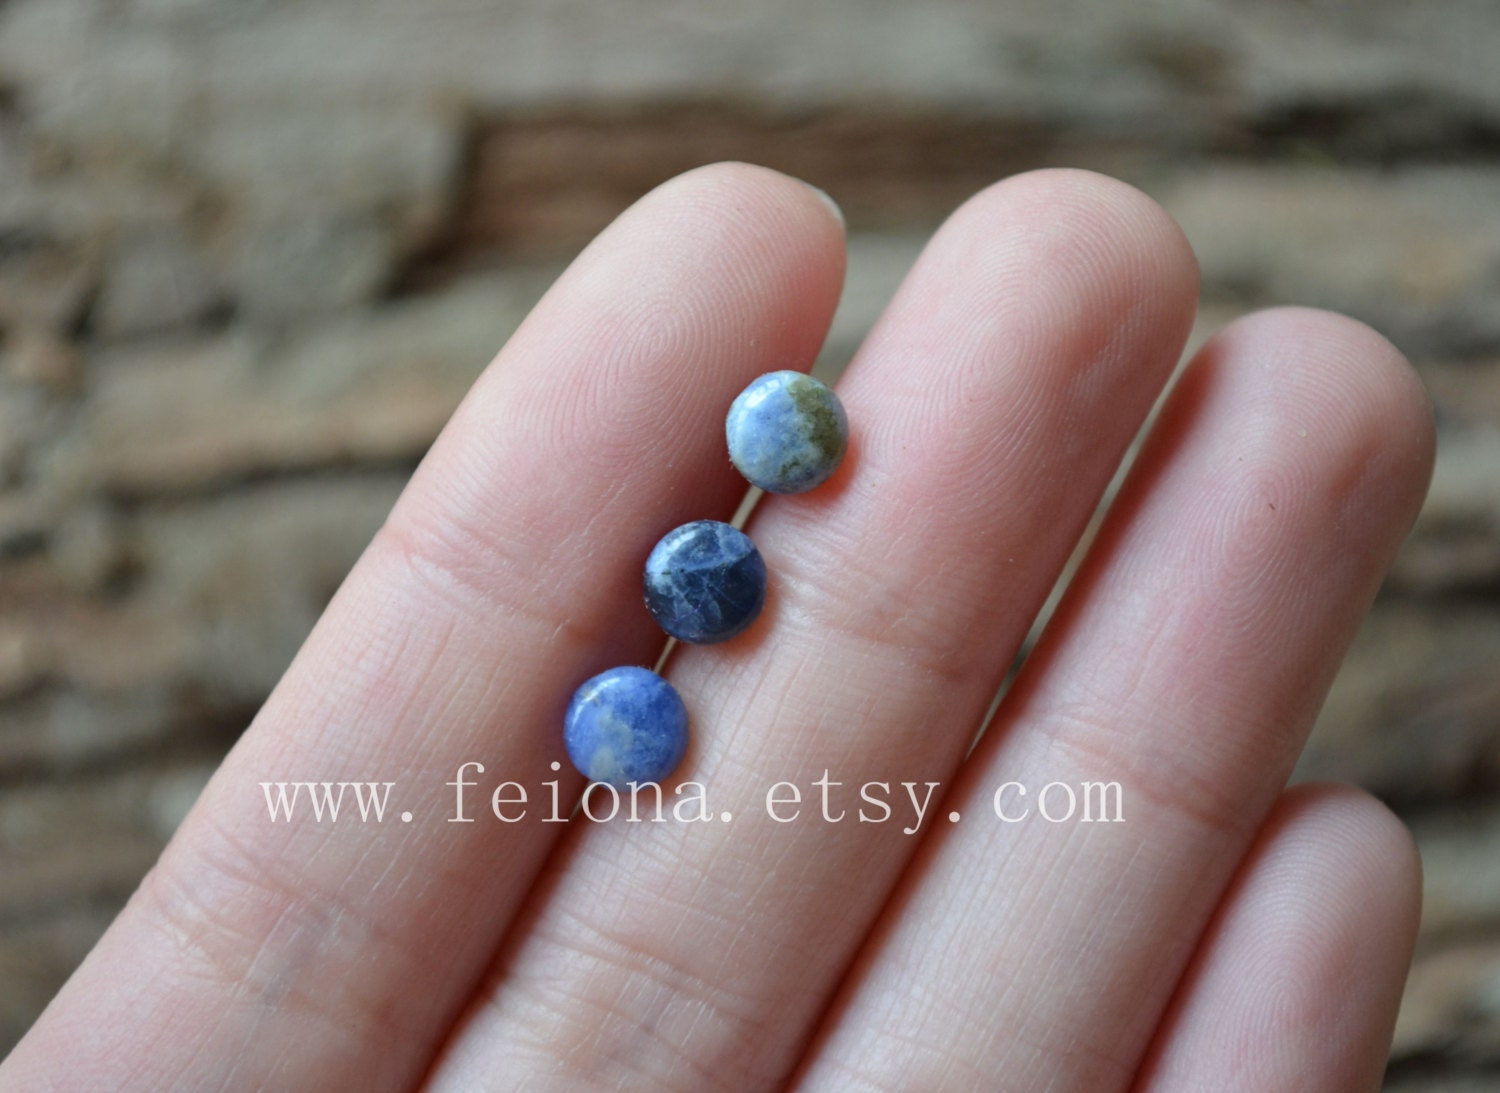 4b2cb8eb35ff2 Nature blue 6 MM lapis cartilage barbell Upper Ear Ring piercing , barbell  cartilage Earring Tragus Helix Piercing ,Cartilage jewelry